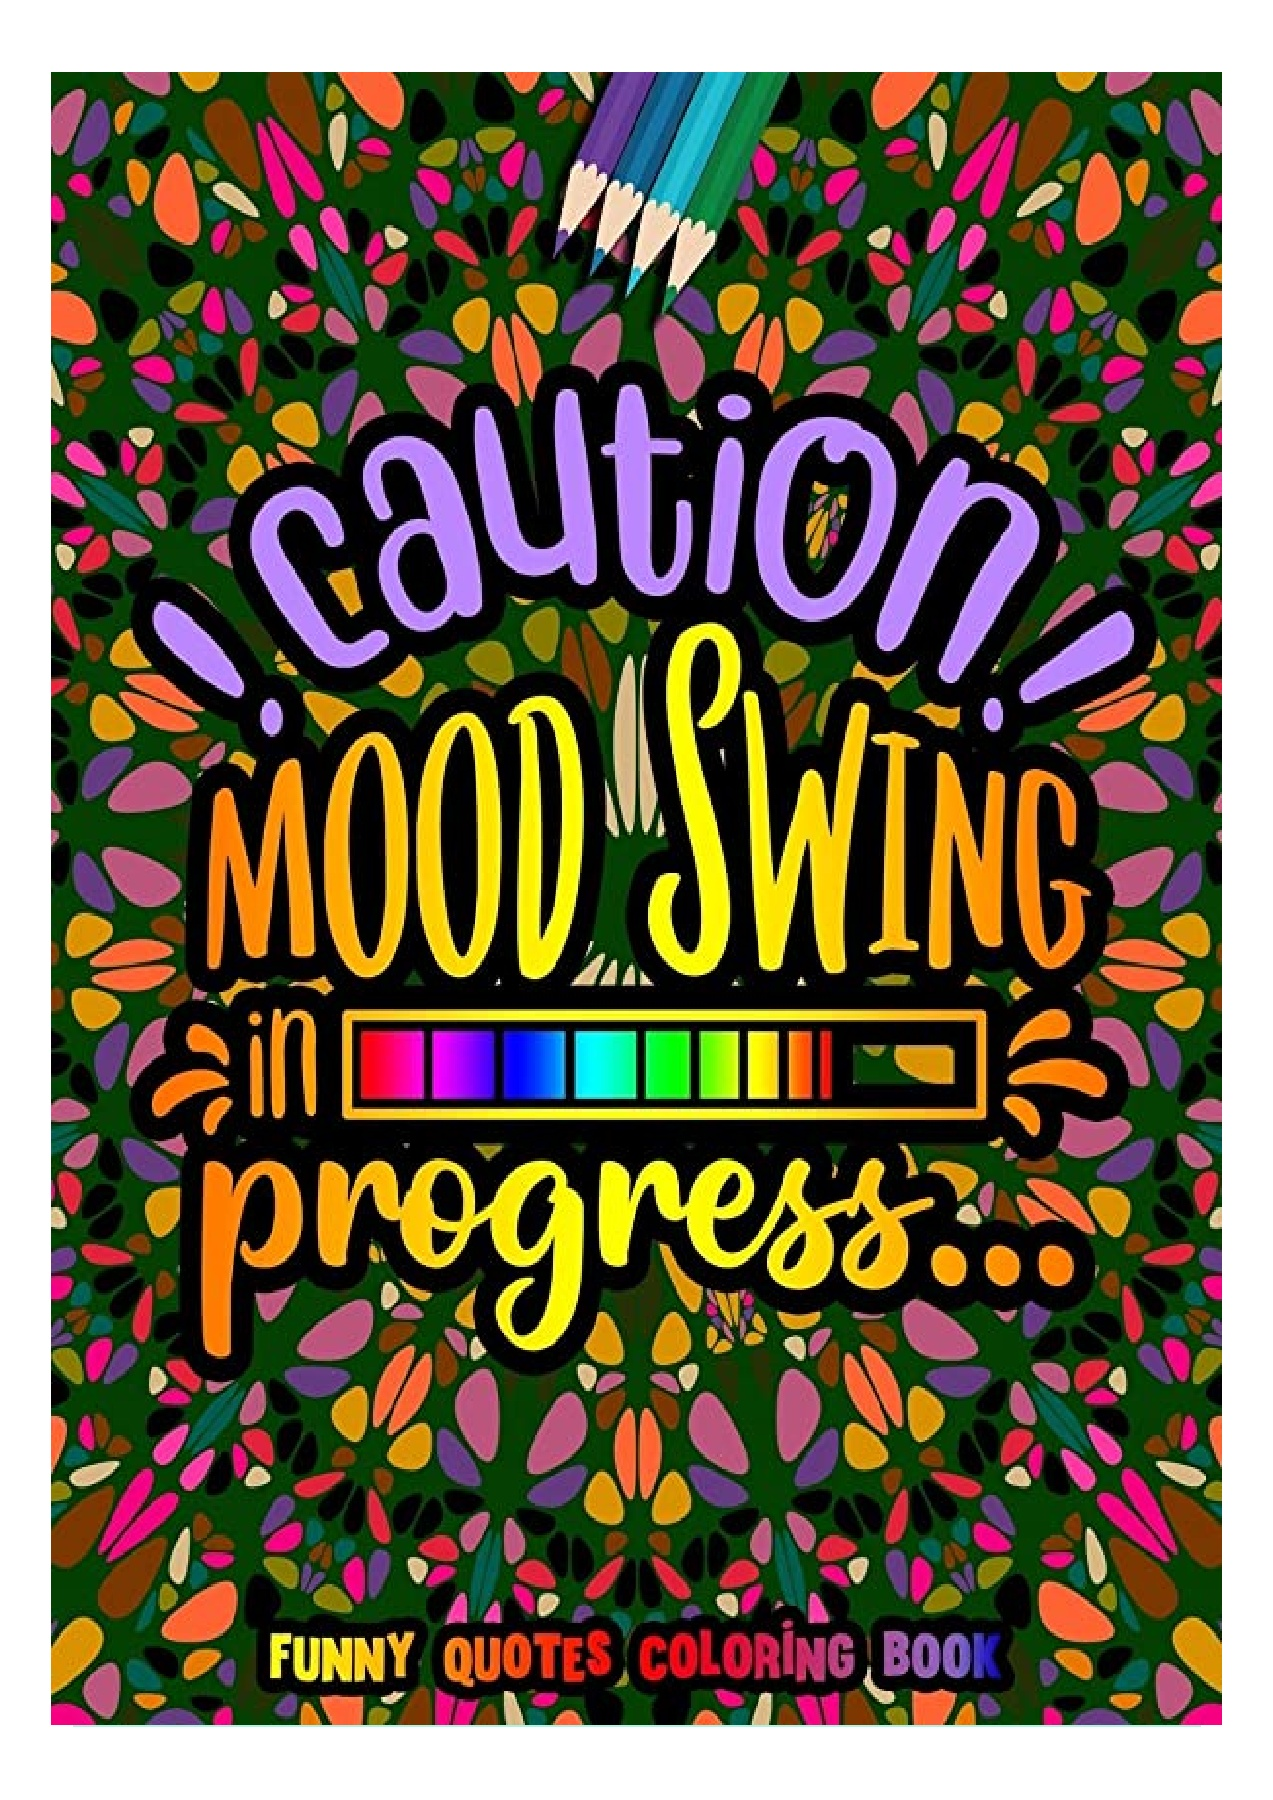 Read Pdf Caution Mood Swing In Progress Funny Quotes Coloring Book Funny Quotes For Adult Relaxation And Stress Relief On Geometric Patterns Trial Ebook